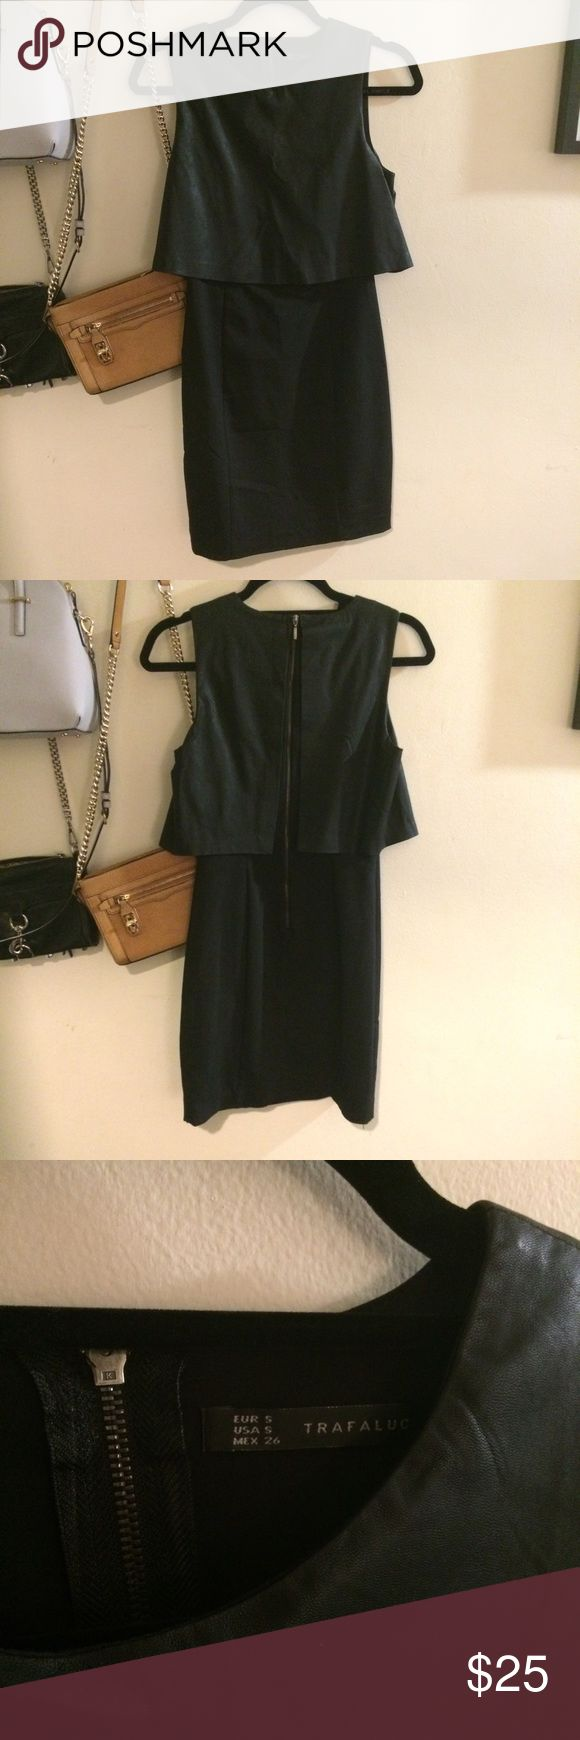 Black dress very - Zara Black Dress A Very Cute Dress With A Faux Leather Overlay Portion On Top